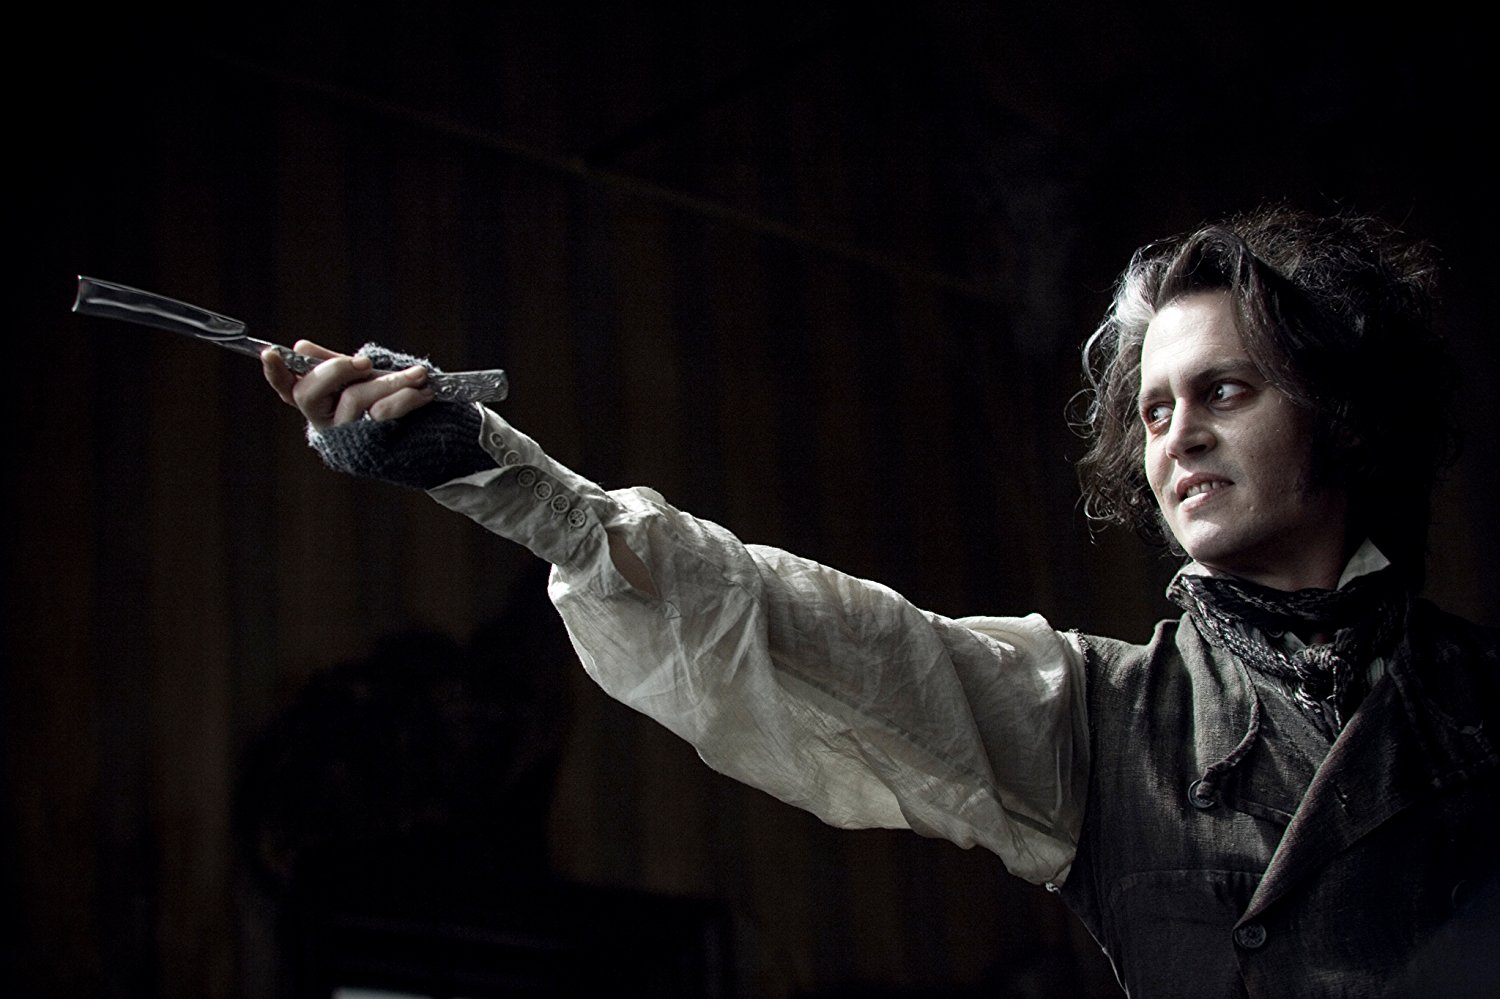 Johnny Depp as Sweeney Todd: The Demon Barber of Fleet Street (2007)